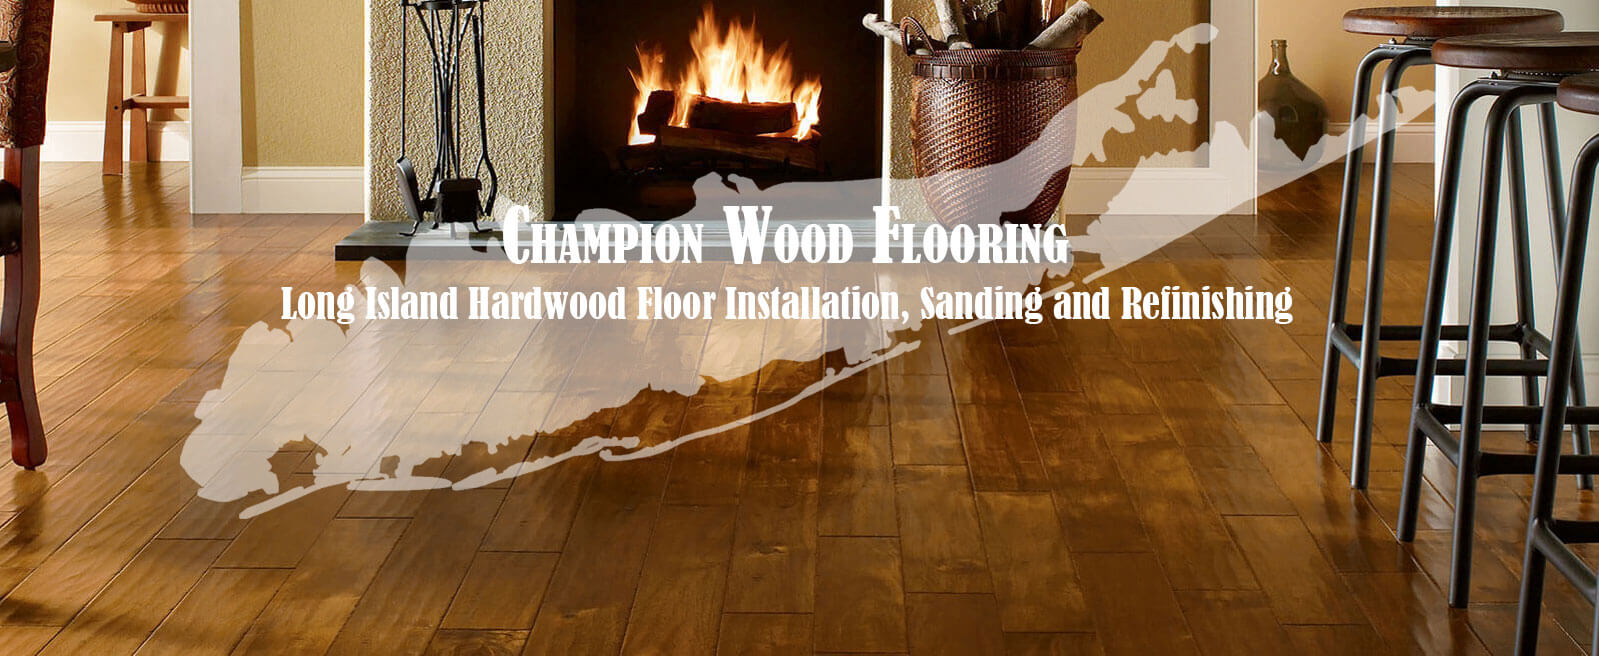 Champion Wood Flooring Hardwood Flooring Long Island